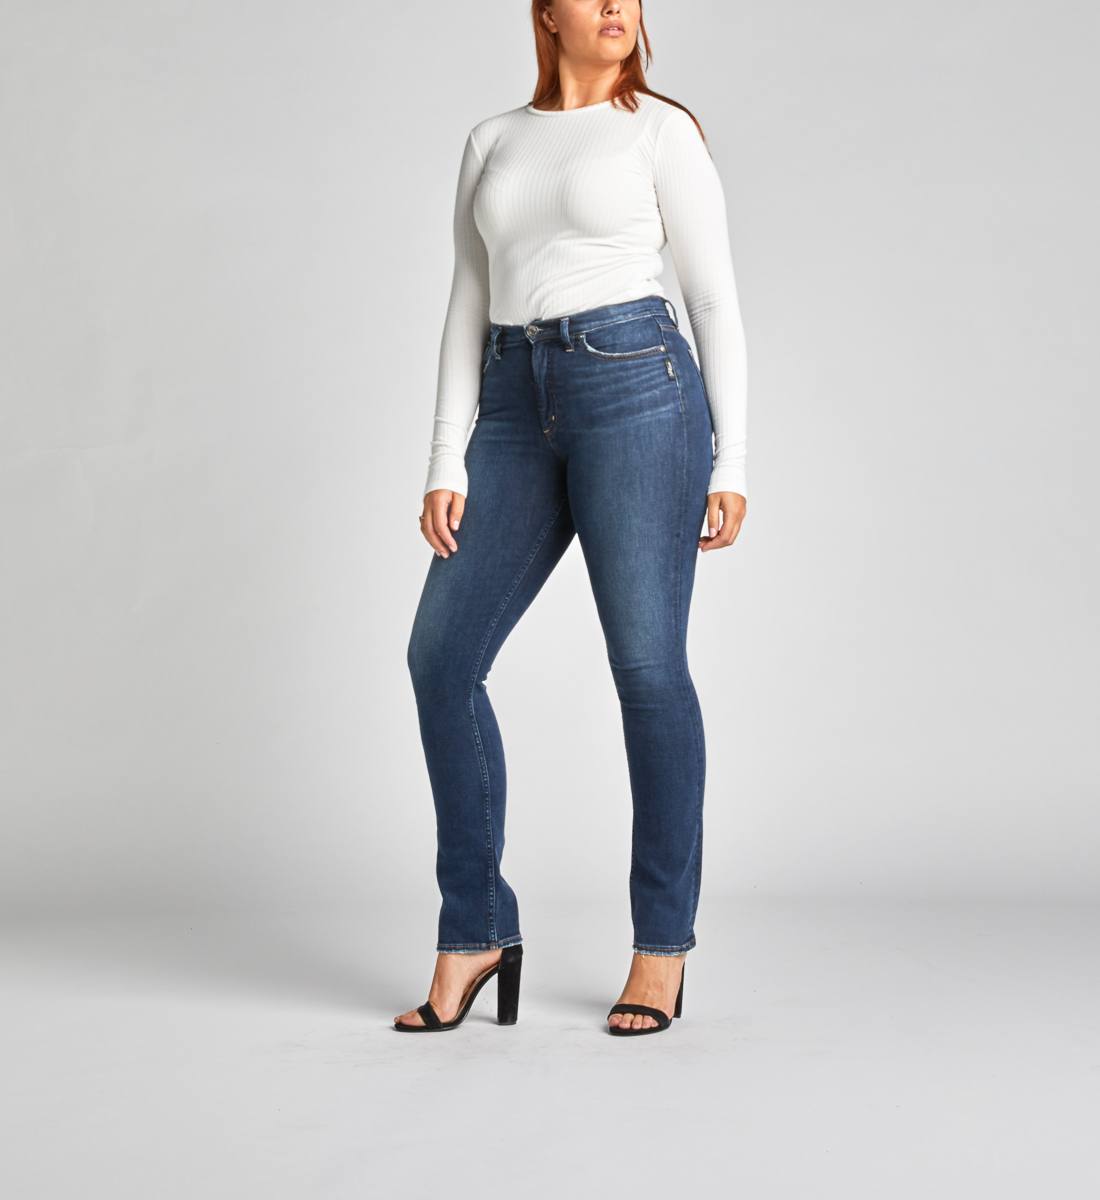 Calley Super High Rise Straight Leg Jeans Alt Image 1